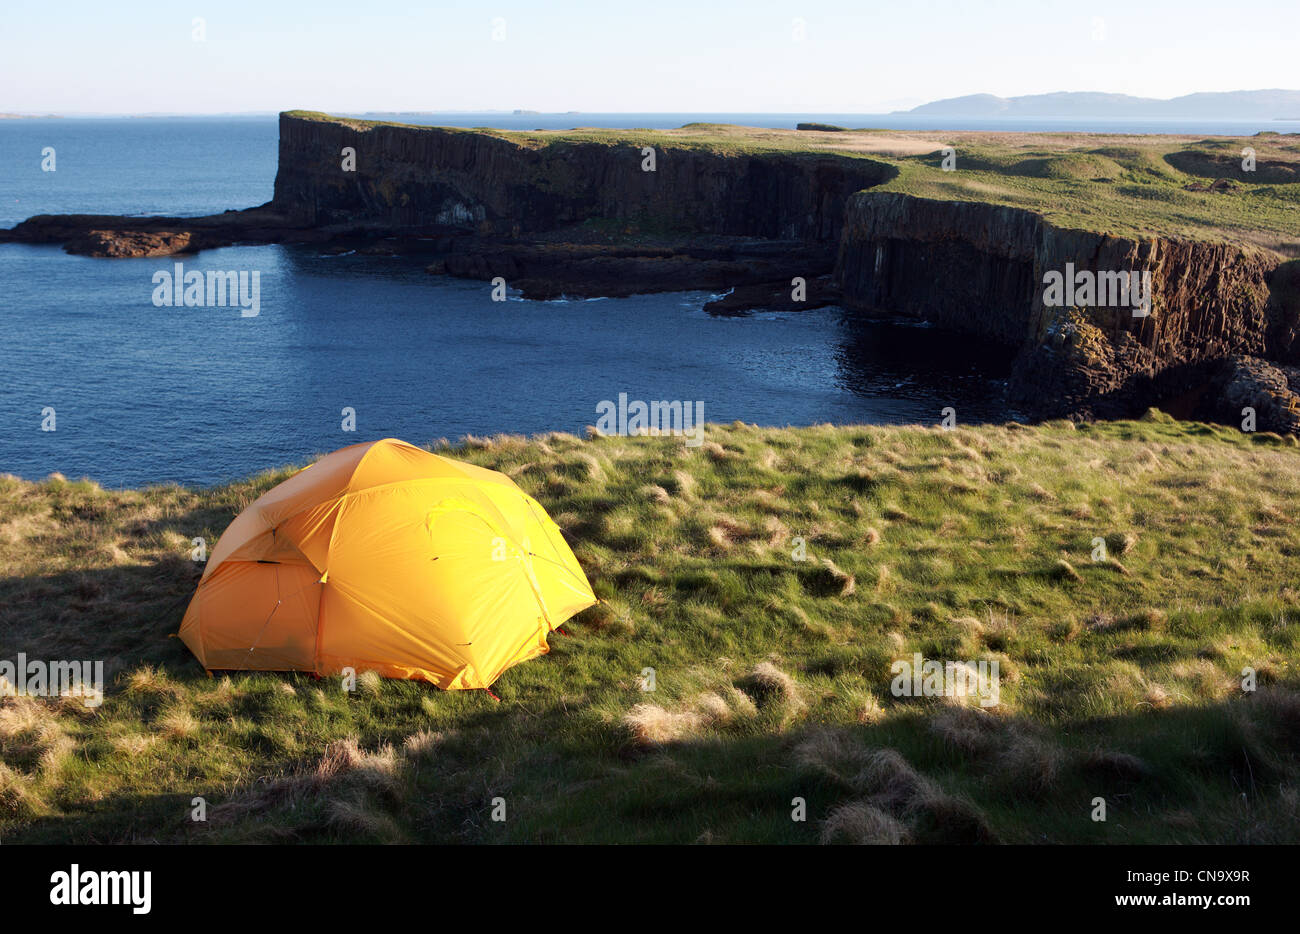 Yellow tent on the uninhabited island of Staffa in the Inner Hebrides of Scotland - Stock Image